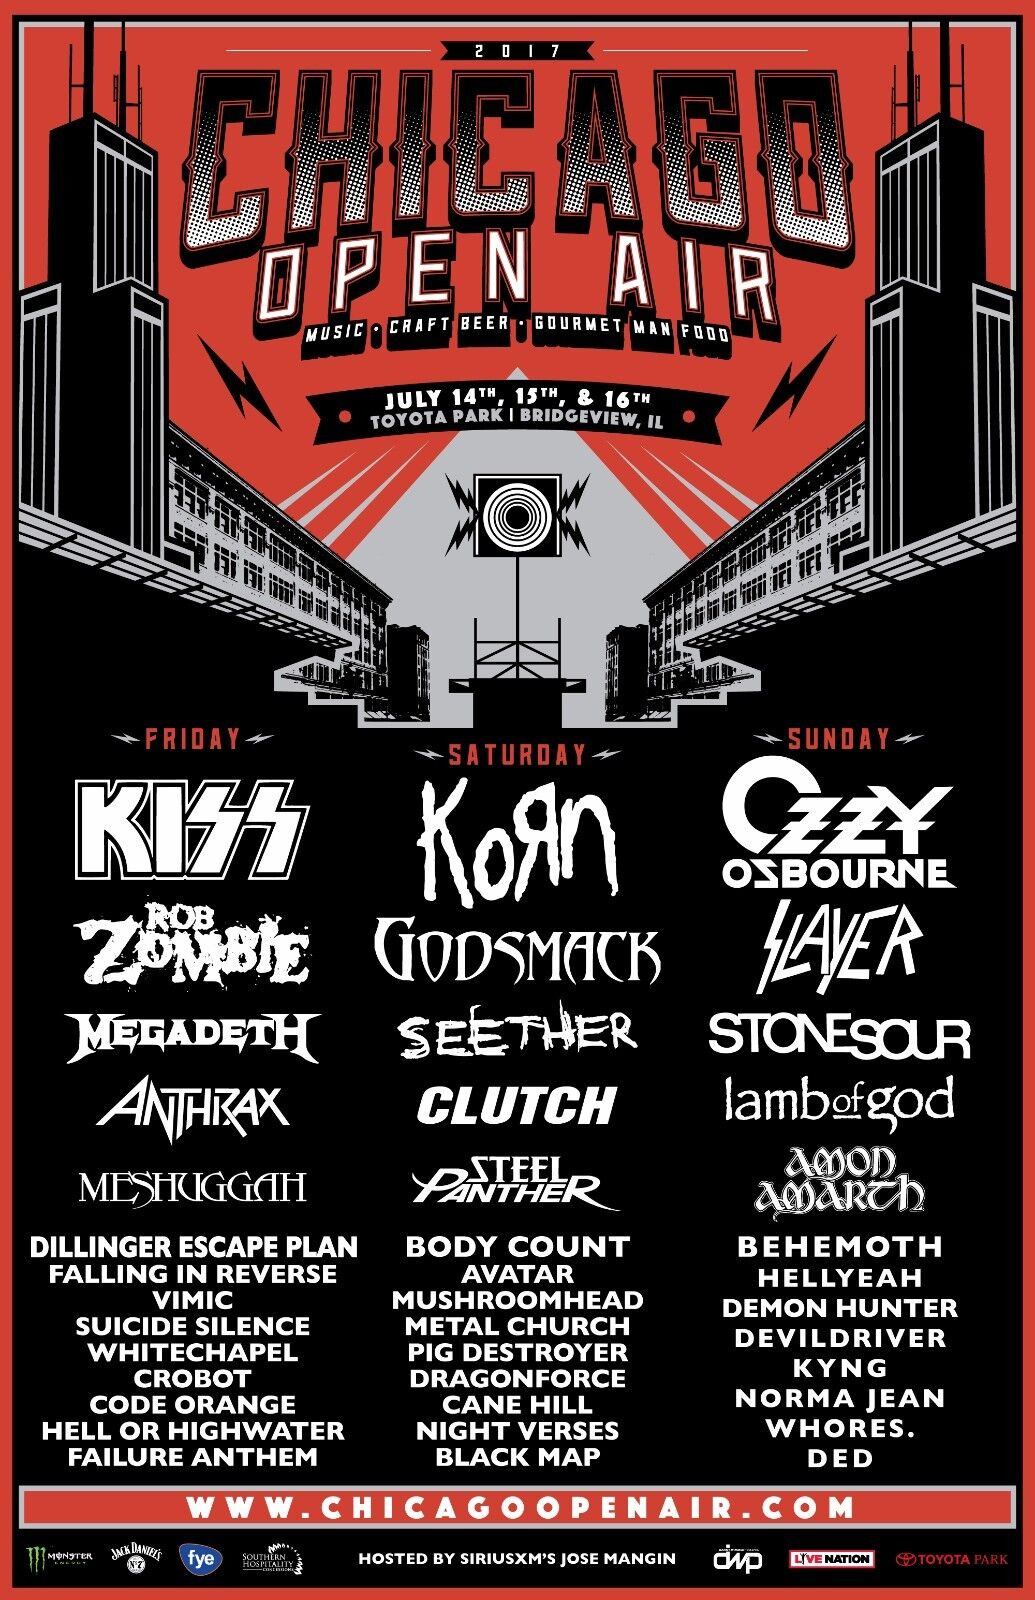 CHICAGO OPEN AIR 2017 CONCERT TOUR POSTER Kiss, Korn, Ozzy Osbourne, Rob Zombie - $11.99